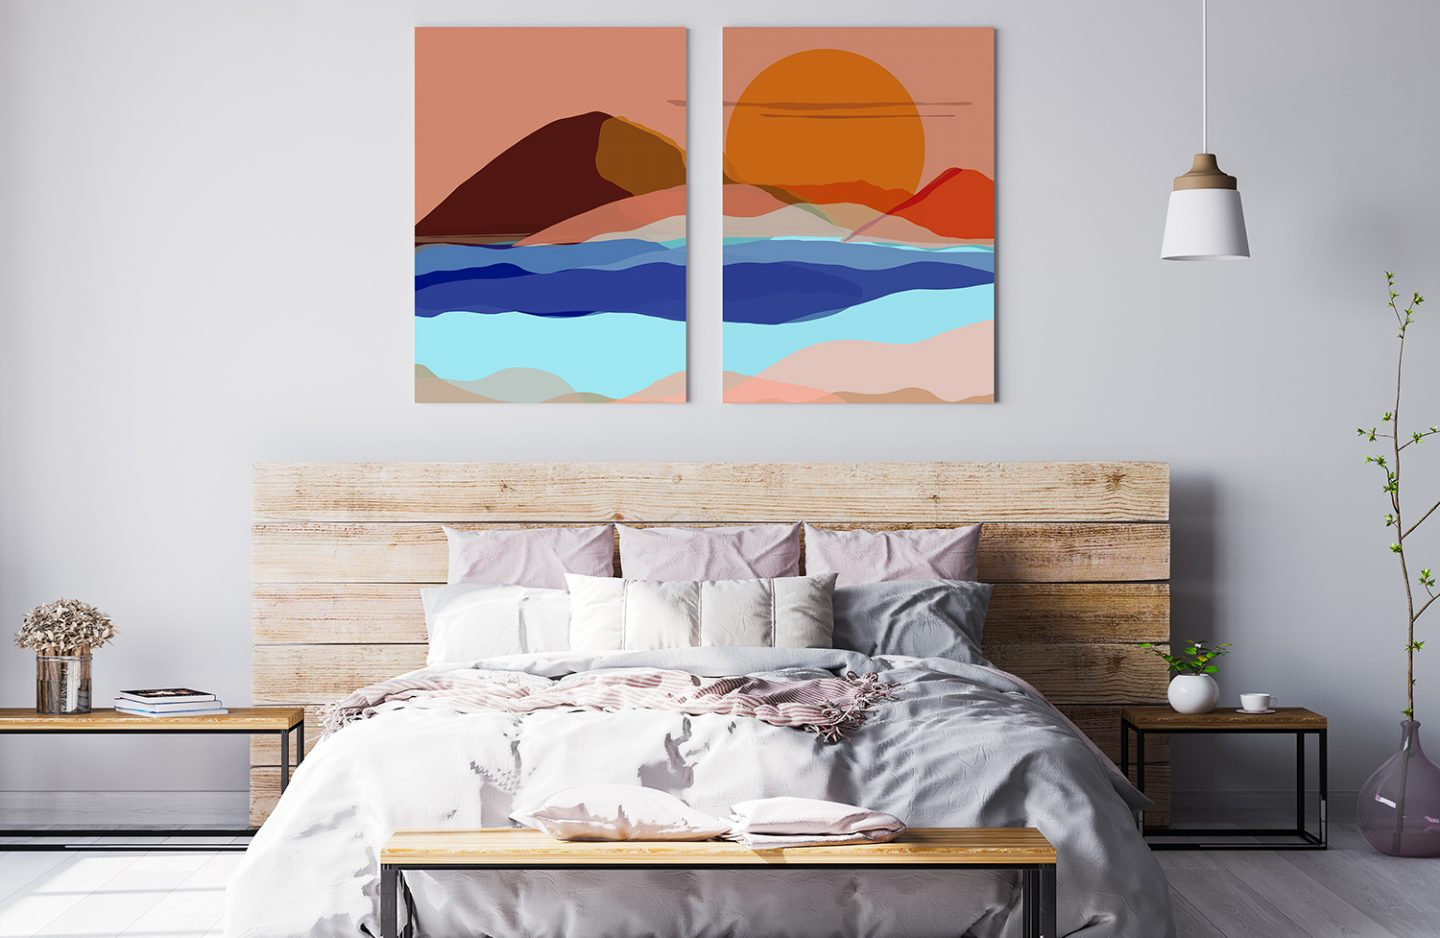 Bright and colourful metal prints displayed above a bed